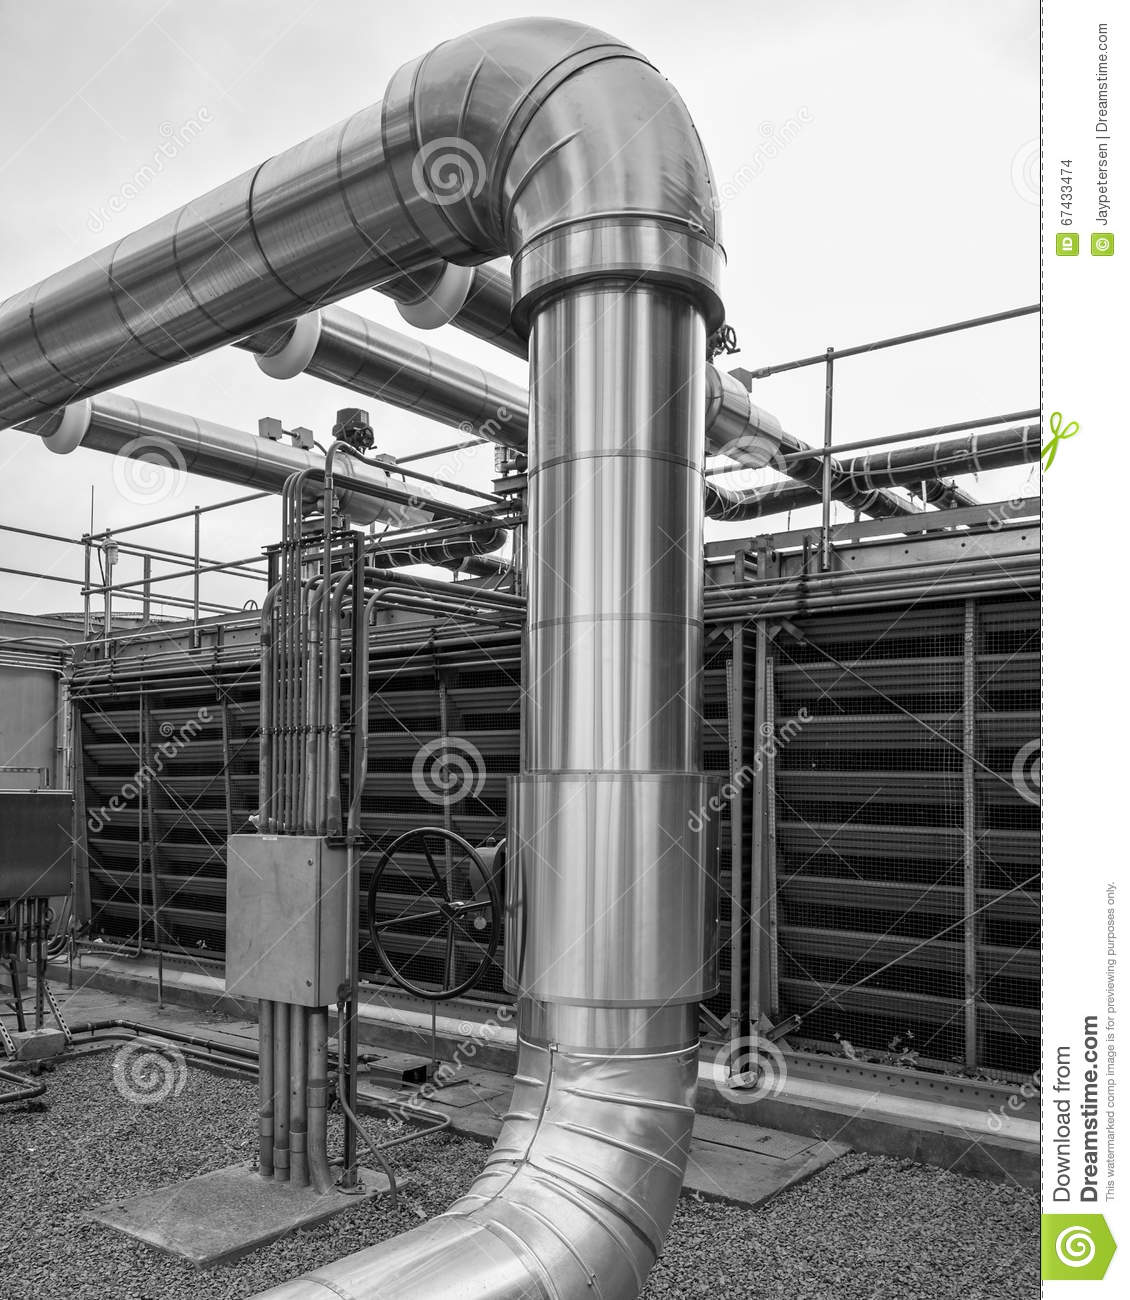 Cooling Tower Header Pipe And Valve  Stock Photo - Image of